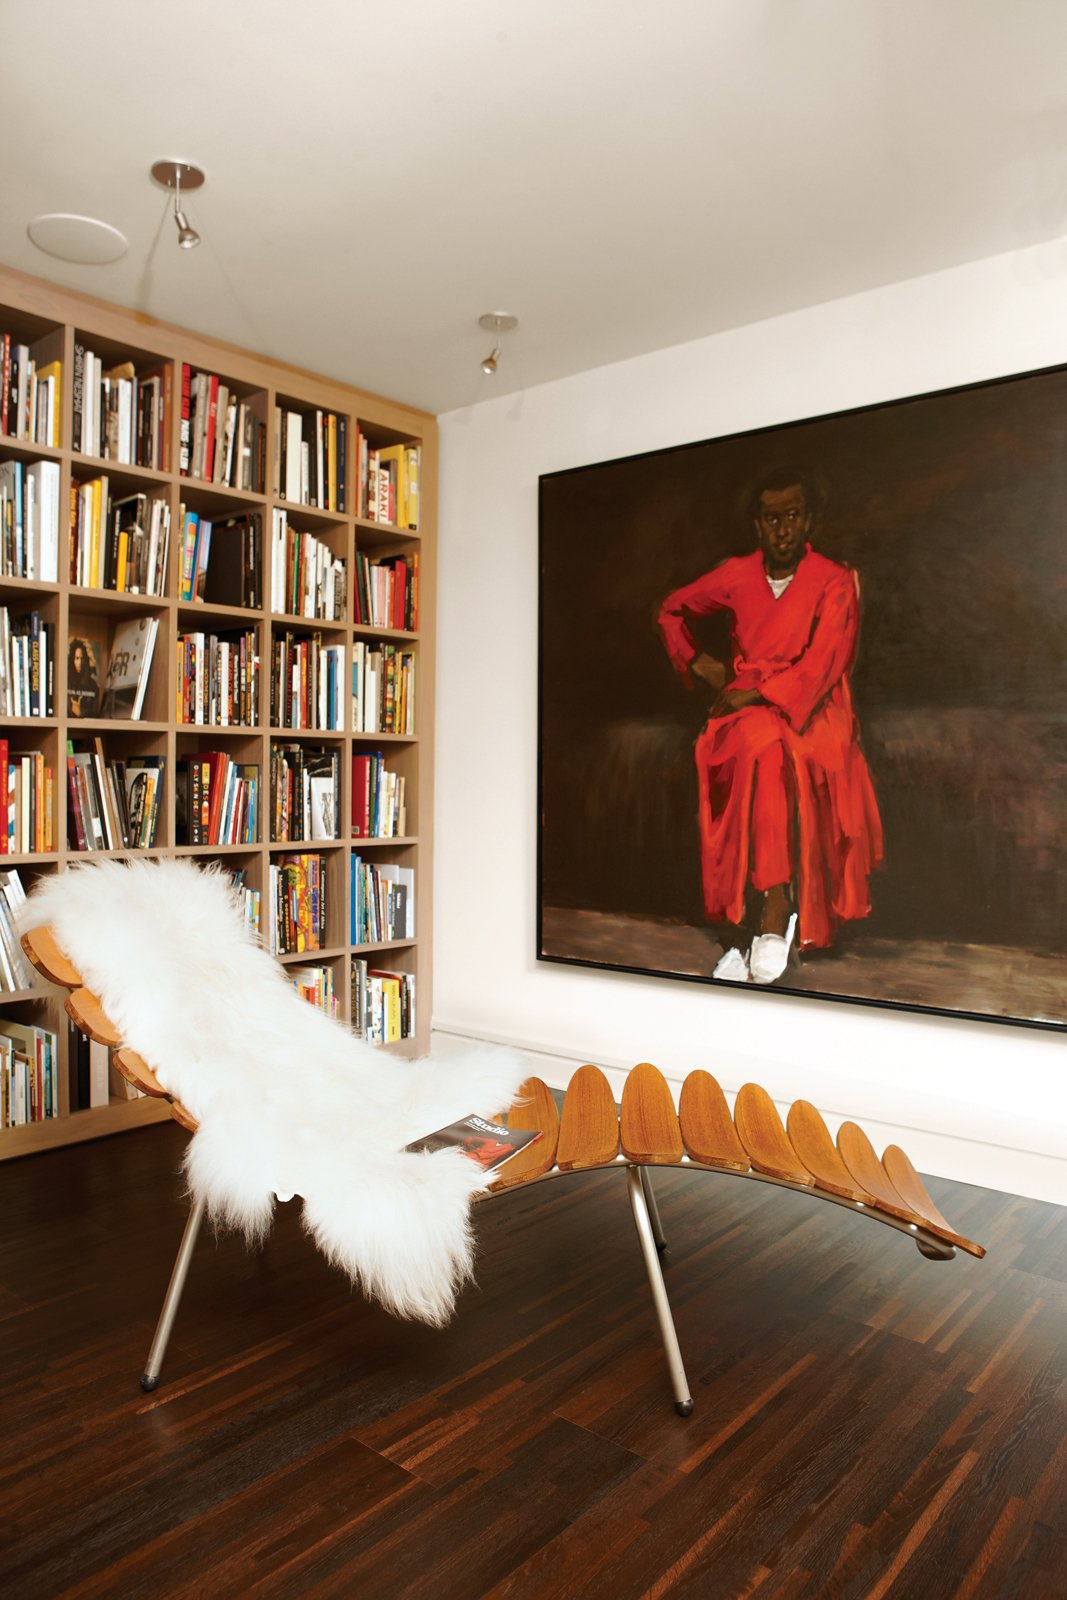 #interior #modern #inside #design #interiordesign #seatingdesign #seating #loungechair #fur #wallart #bookcase #shelving #bookwall #ceilinglight #woodfloor #library #palmslounger #lynetteyiadomboakye #painting #fransschrofer   100+ Best Modern Seating Designs by Dwell